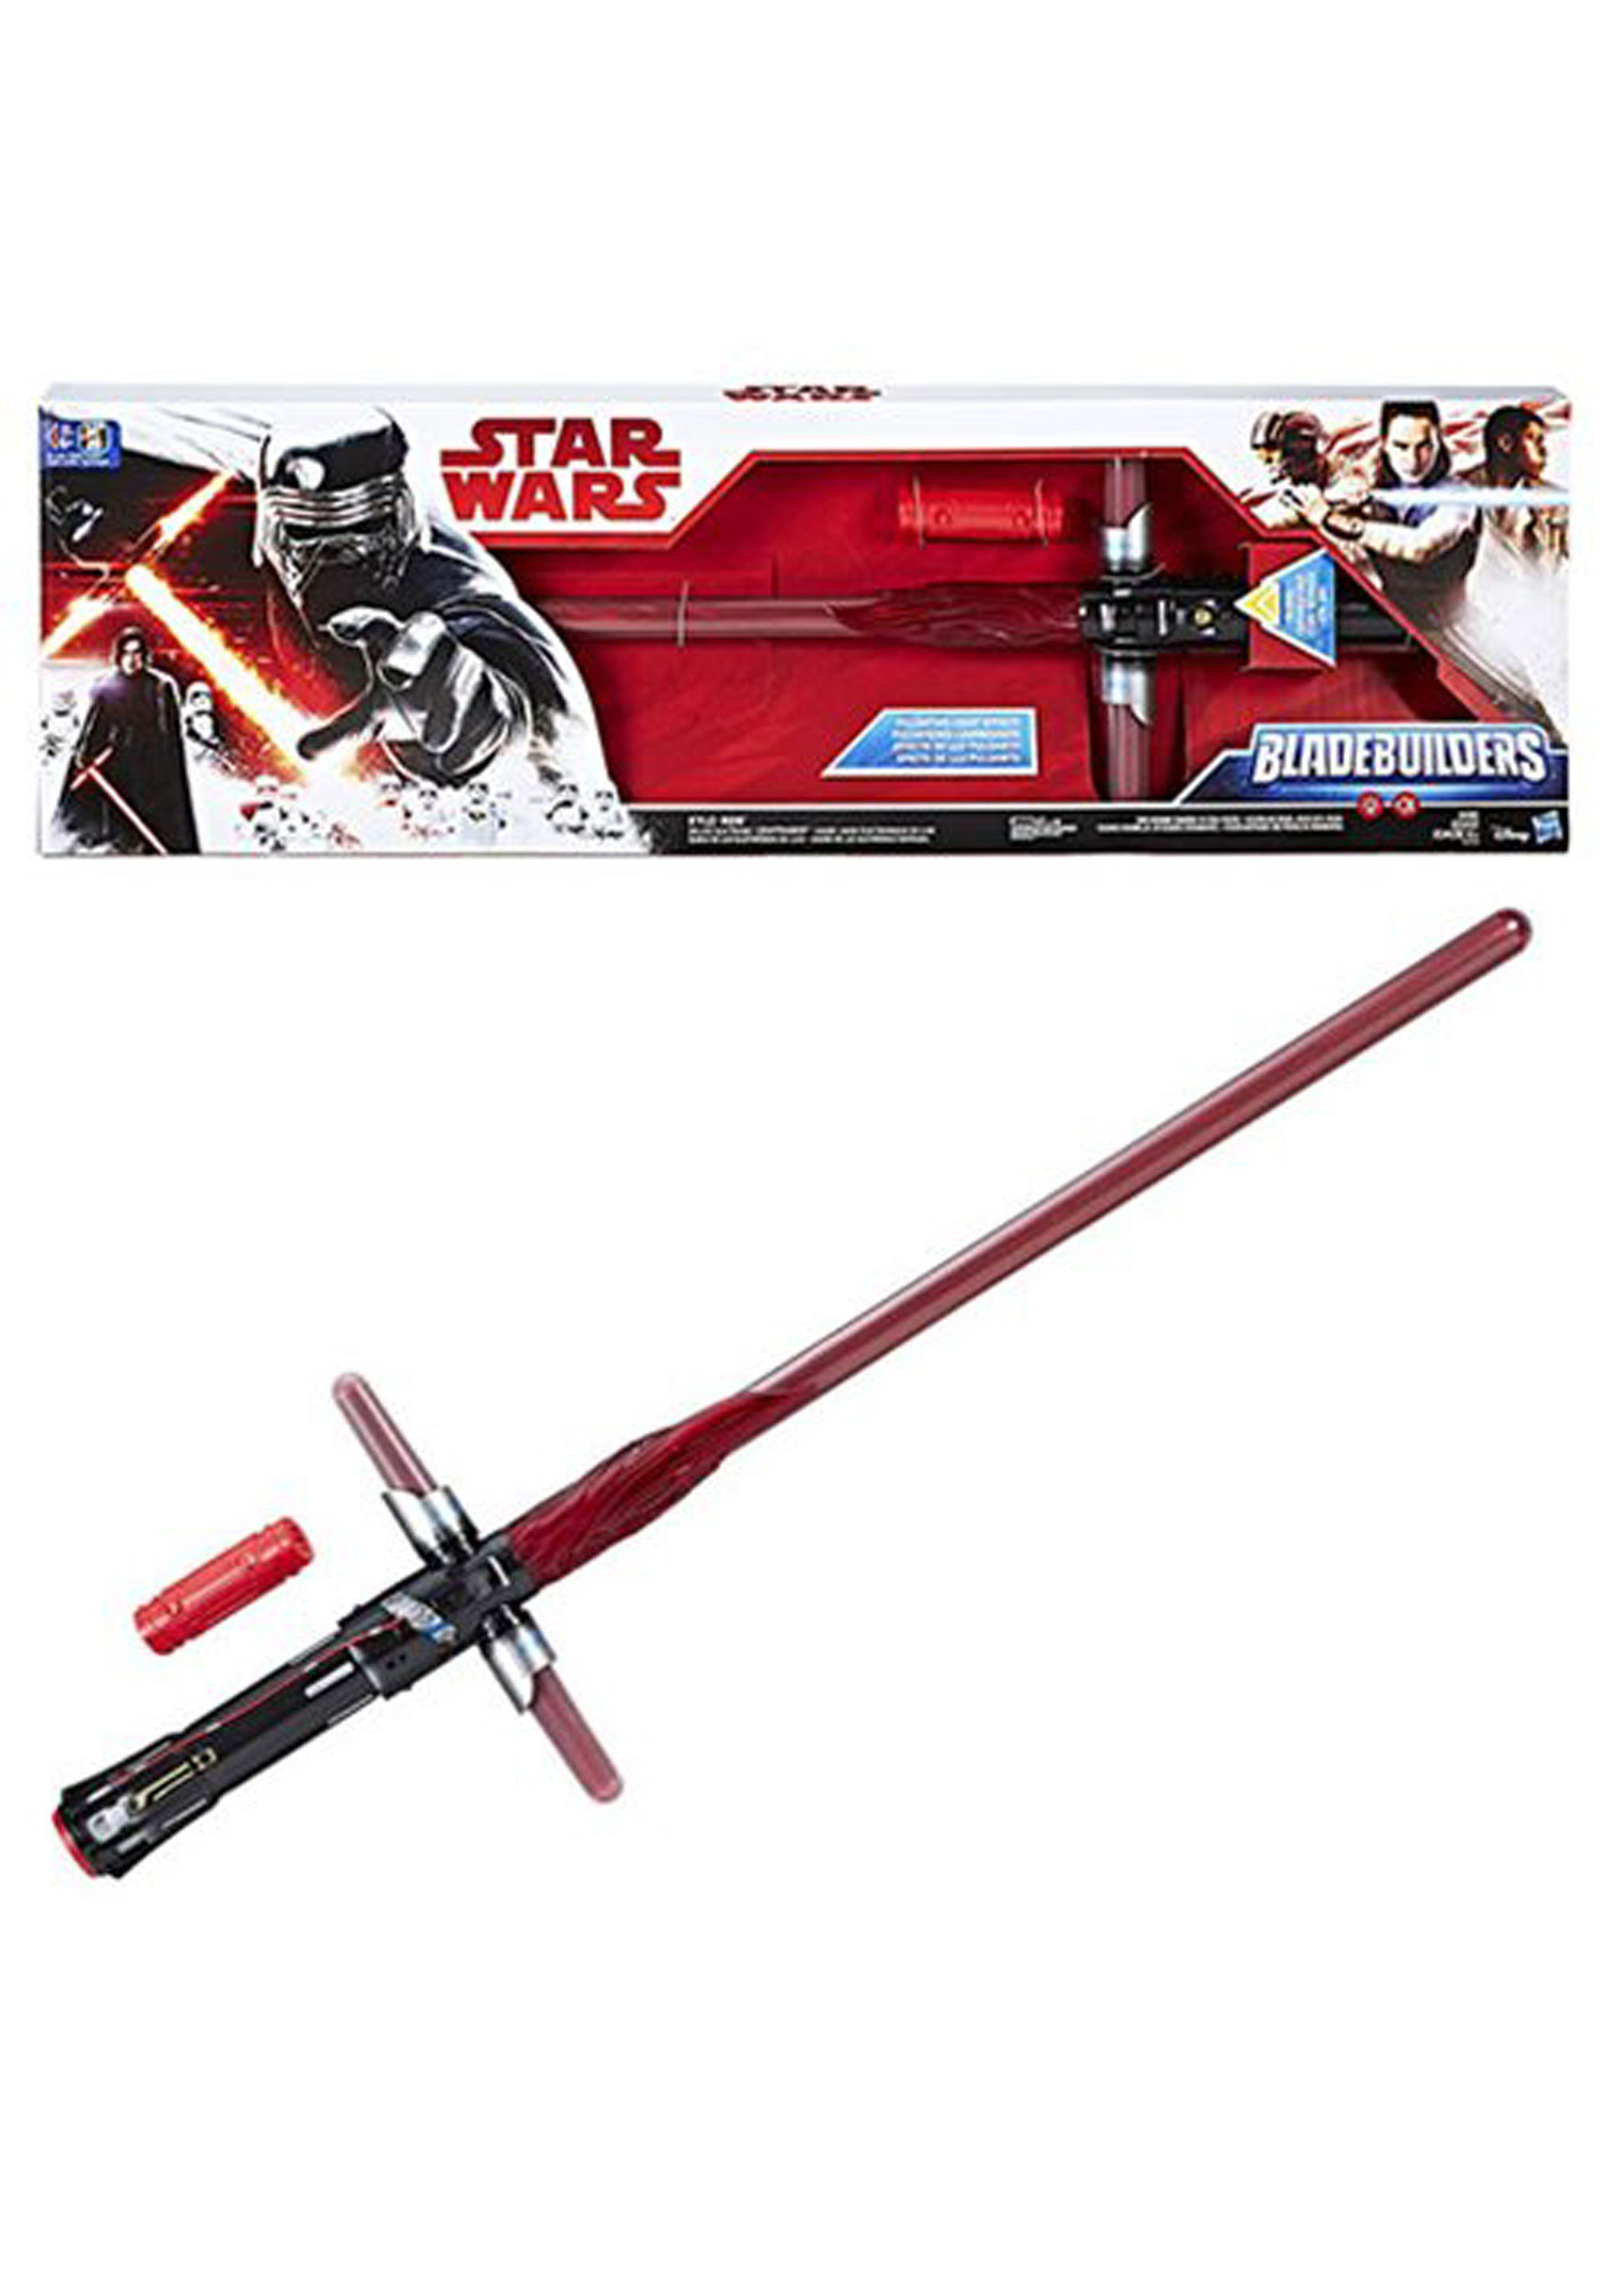 Star Wars The Force Awakens Kylo Ren Deluxe Electronic Lightsaber Toys & Games